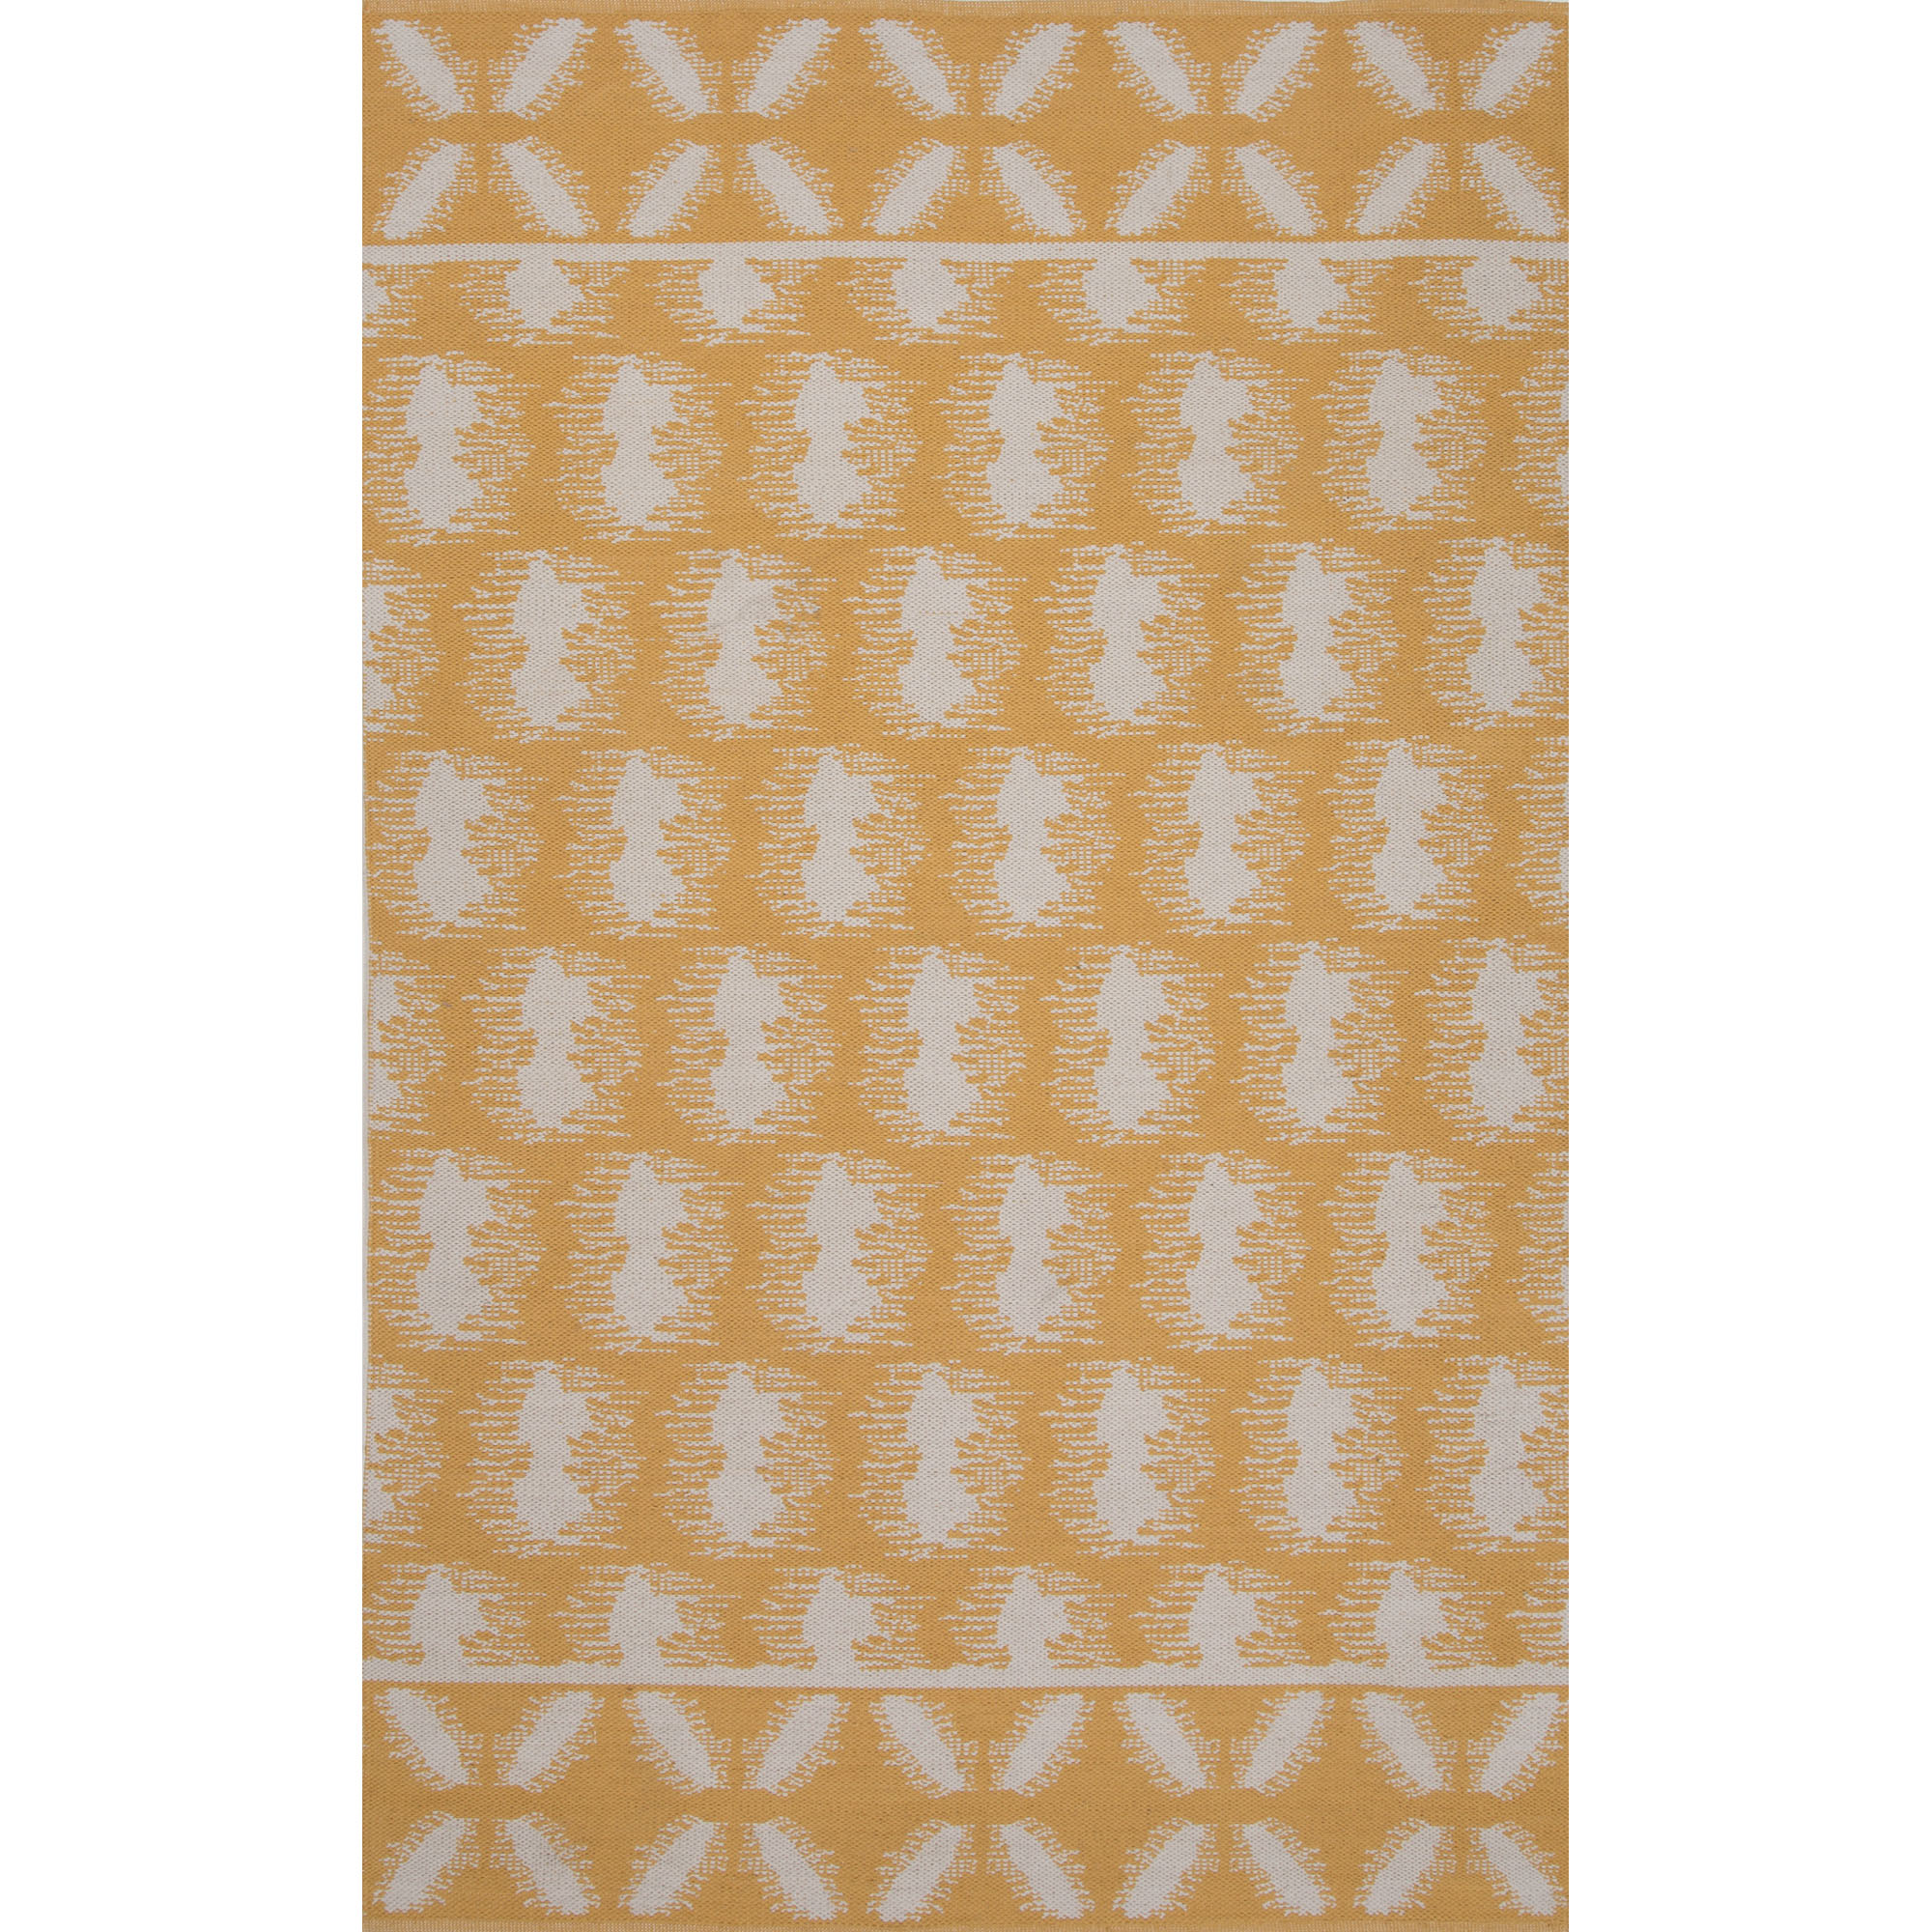 JAIPUR Rugs Traditions Modern Cotton Flat Weave 5 x 8 Rug - Item Number: RUG120666